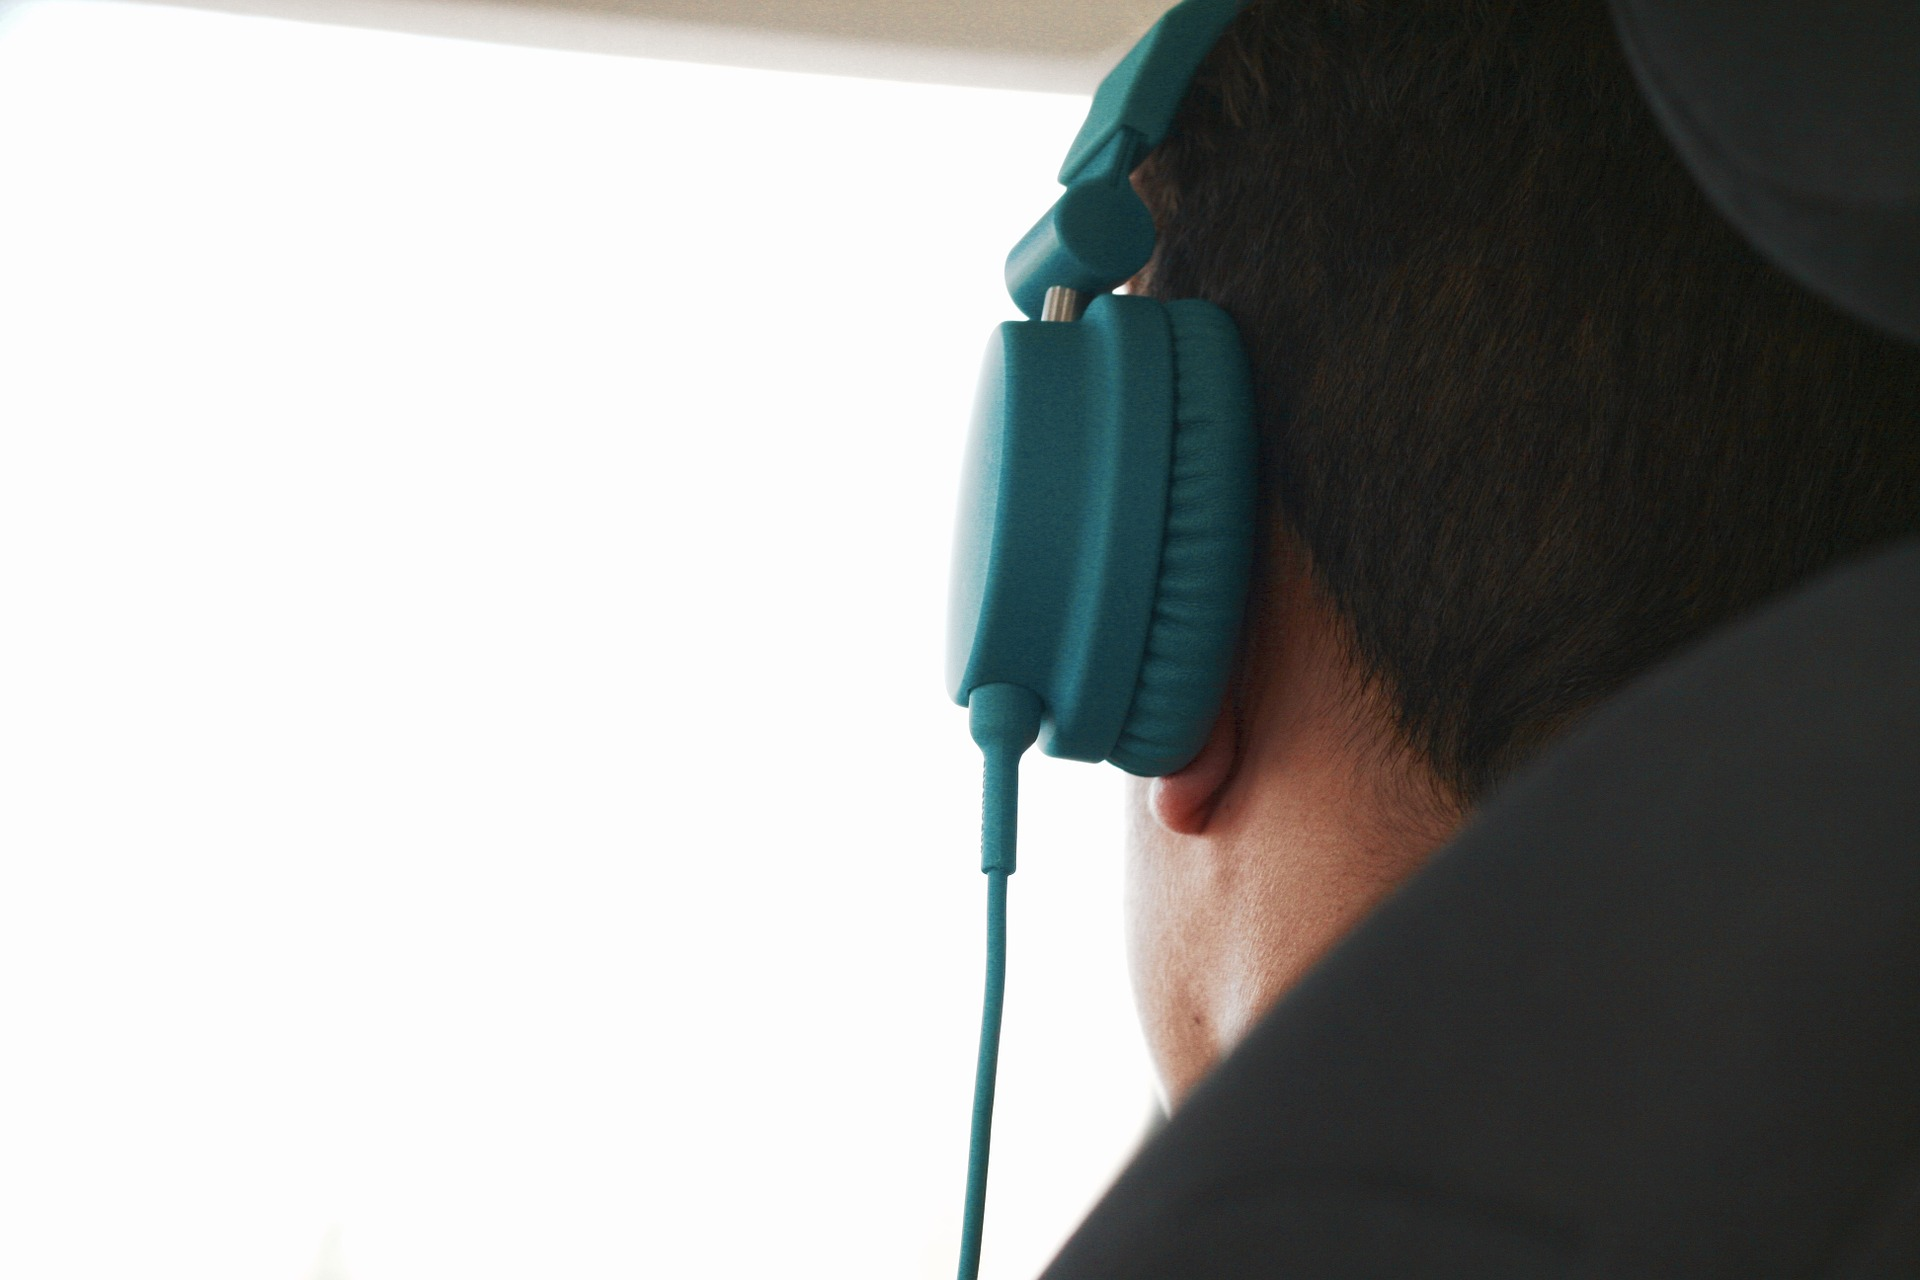 on-ear noise cancelling headphones